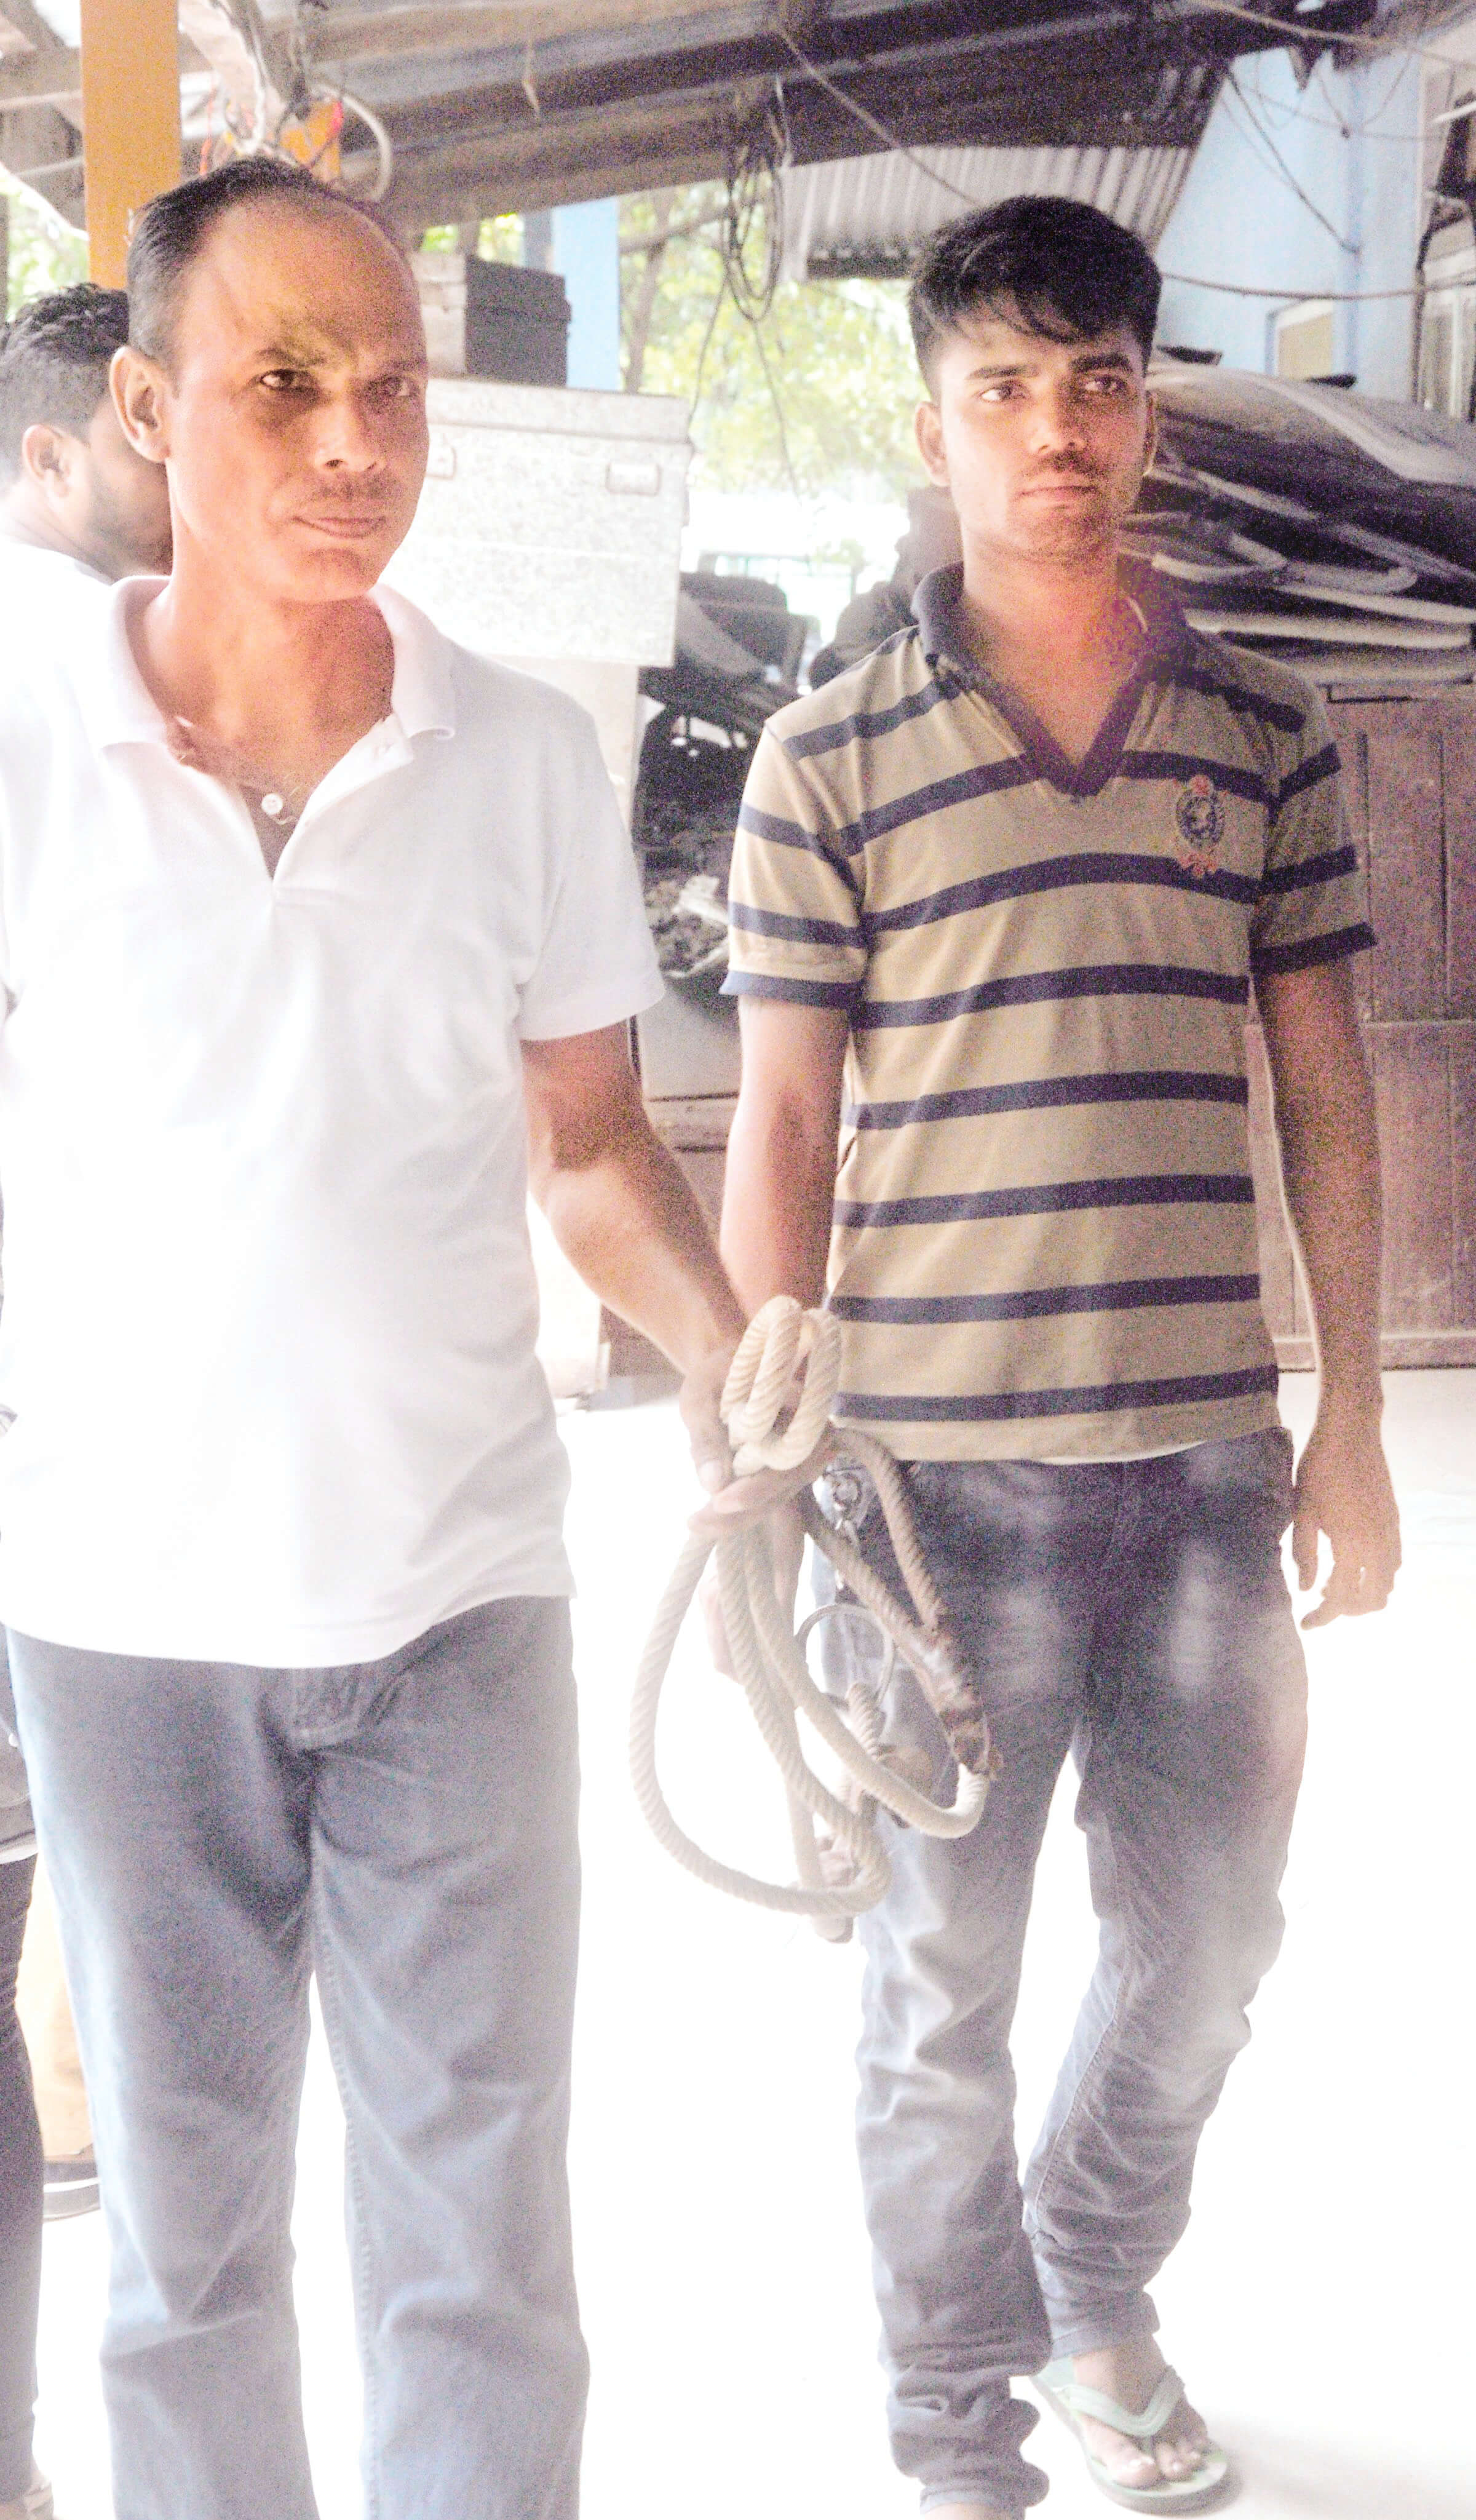 ATM fraud: City resident loses Rs 80,000